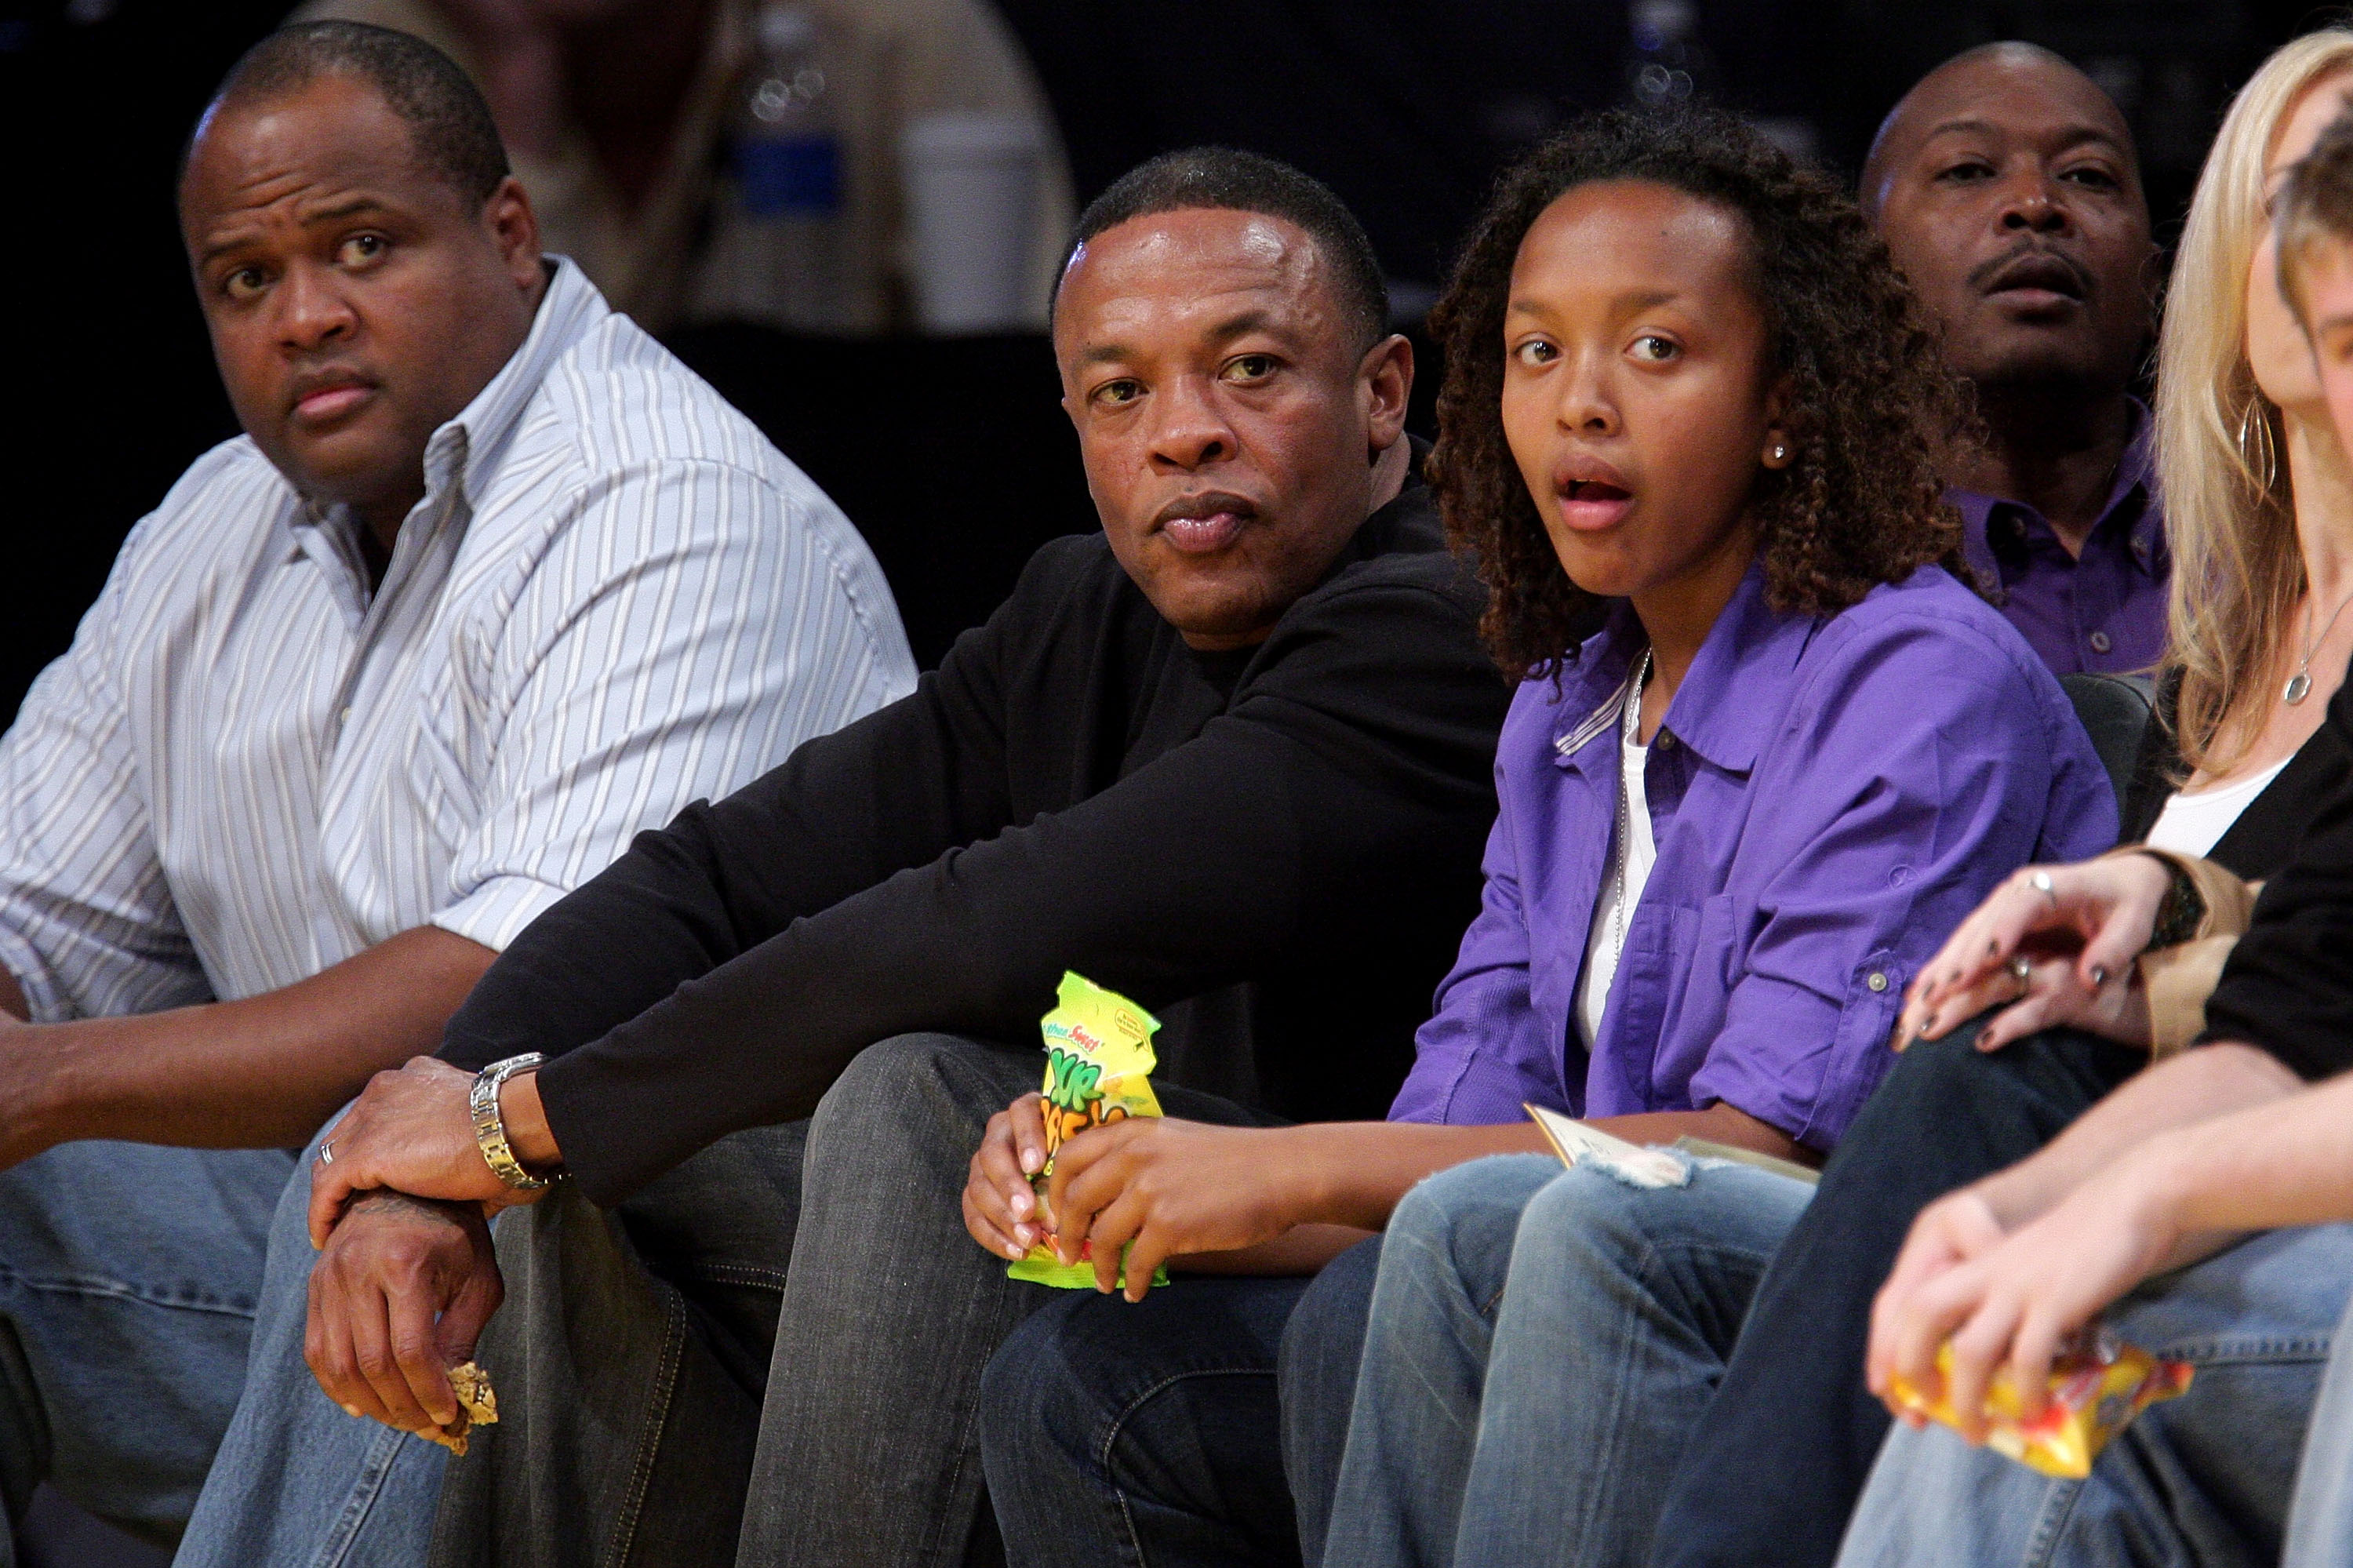 Dr. Dre (L) and his daughter Truly (R) attend the Los Angeles Lakers versus Denver Nuggets game at Staples Center on April 9, 2009 in Los Angeles, California.